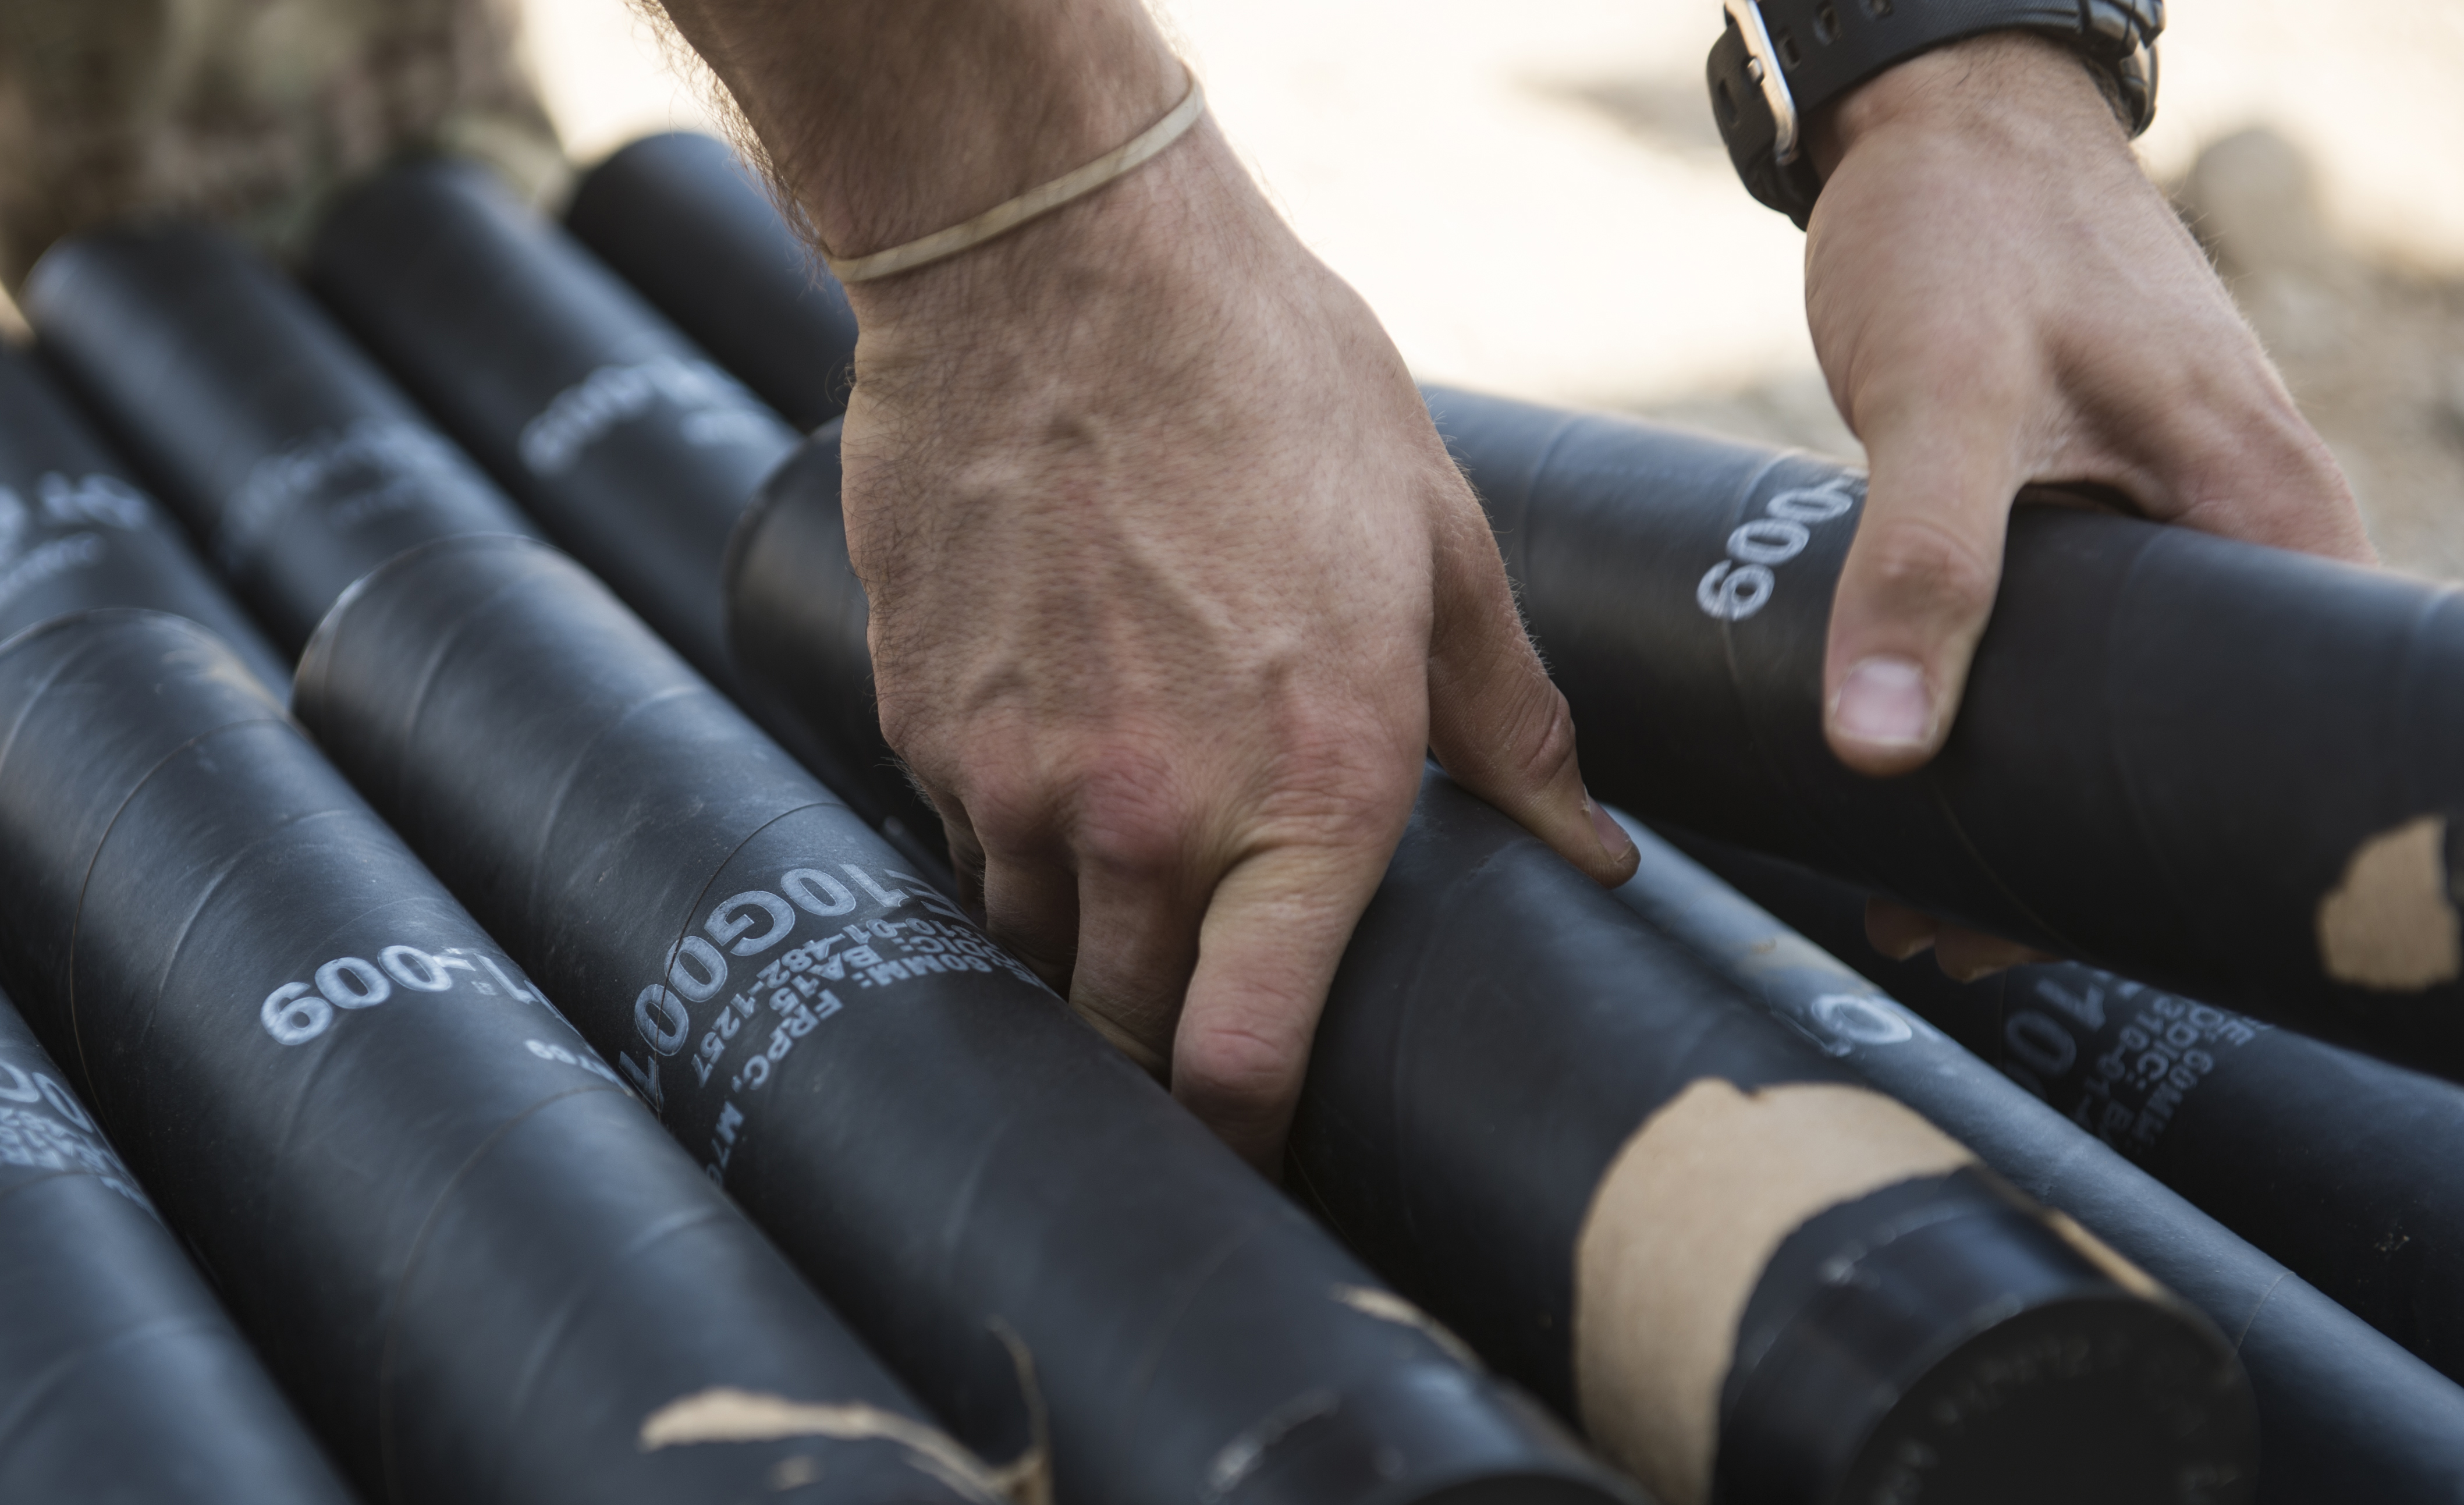 U.S. Army Sgt. Nicholas Mormando, Alpha Company, 3rd Battalion, 15th Infantry Regiment, places two mortar tubes on a stack of mortars Oct. 12, 2015, in Arta Djibouti. As mortar men attached to the East Africa Response Force, soldiers from Alpha Company employ crew and weapons in offensive and defensive ground combat, carry out scout missions to spot enemy troops and locations, and employ, fire and recover anti-tank mines. (U.S. Air Force photo by Senior Airman Peter Thompson/Released)